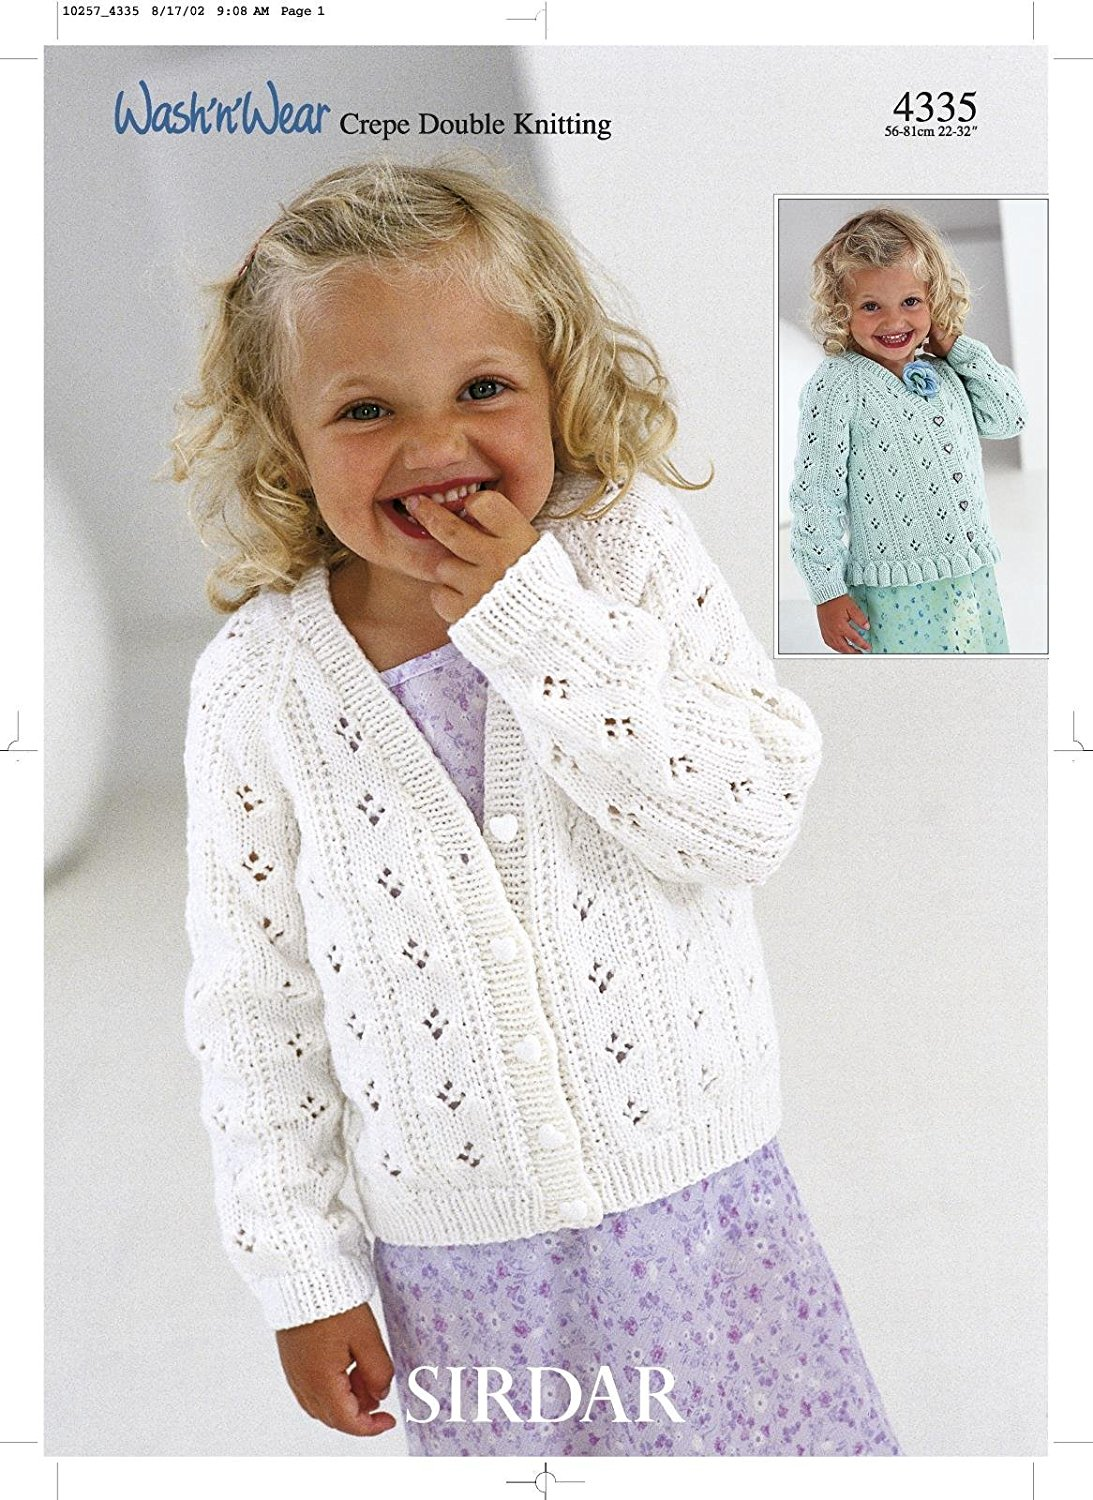 Sirdar Knitting Patterns sirdar wash n wear dk childrenu0027s knitting pattern 4335: amazon.co.uk:  kitchen u0026 kormduq